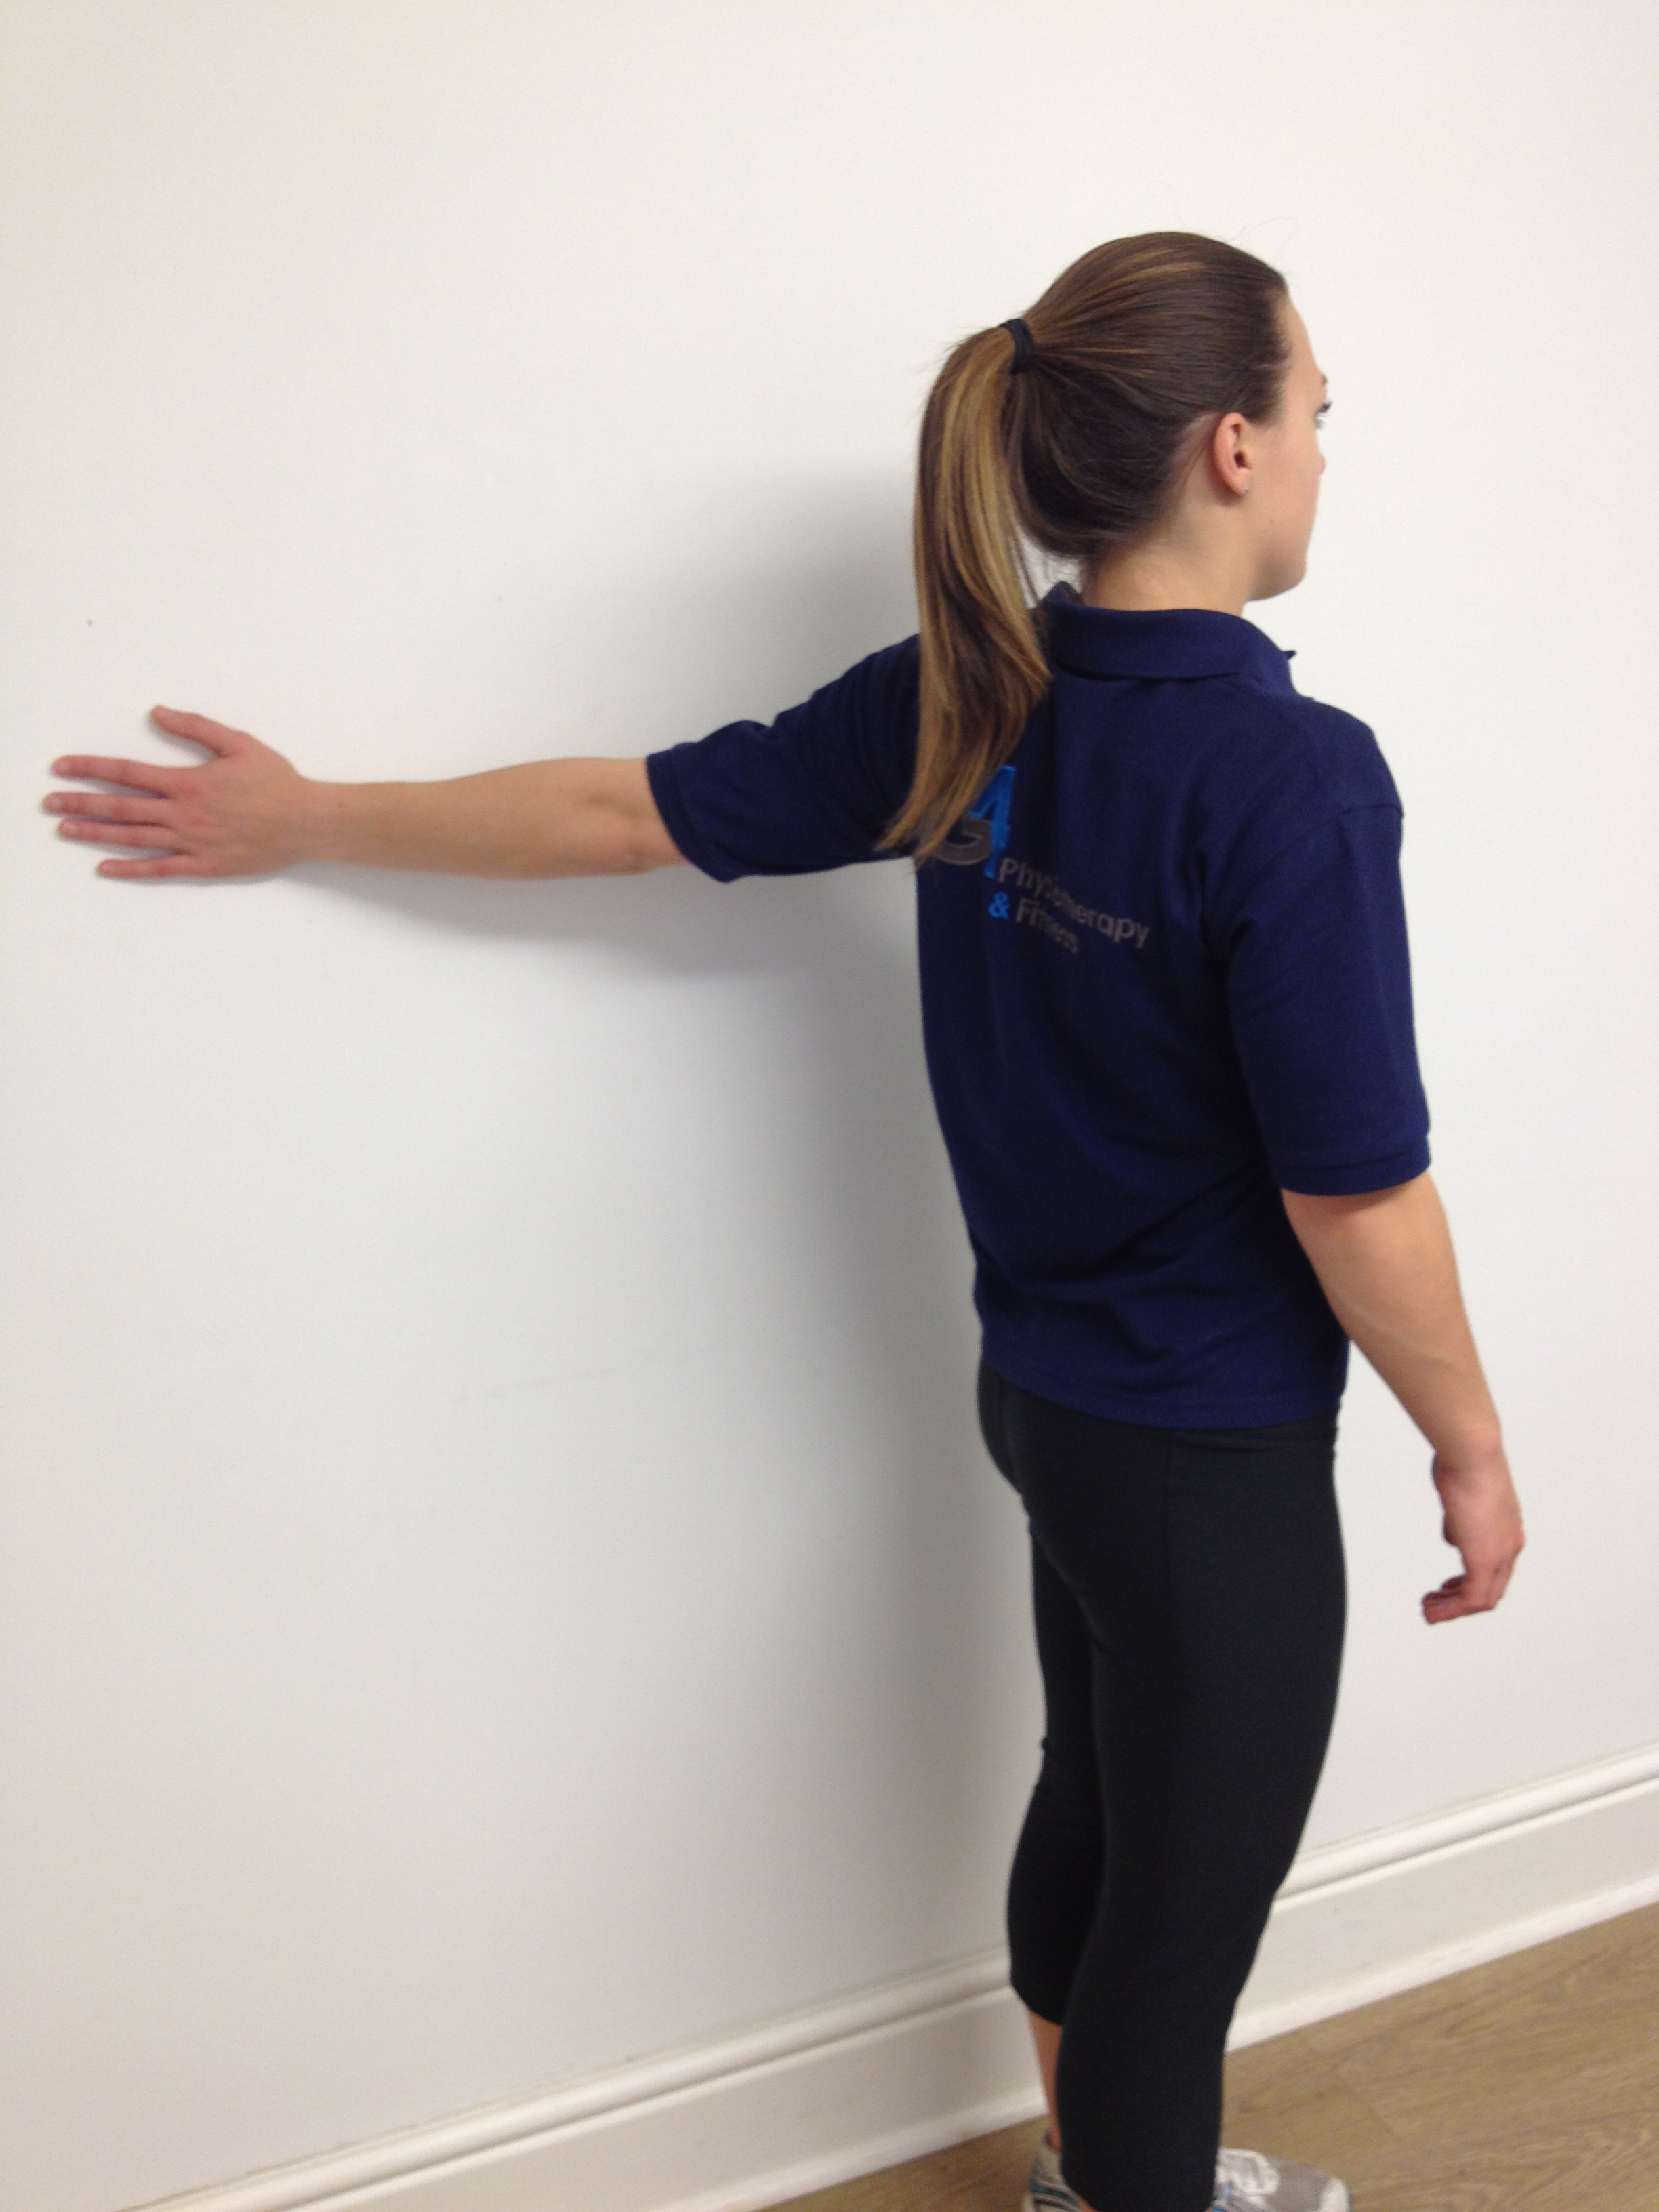 Anterior Shoulder Amp Chest Stretch G4 Physiotherapy Amp Fitness